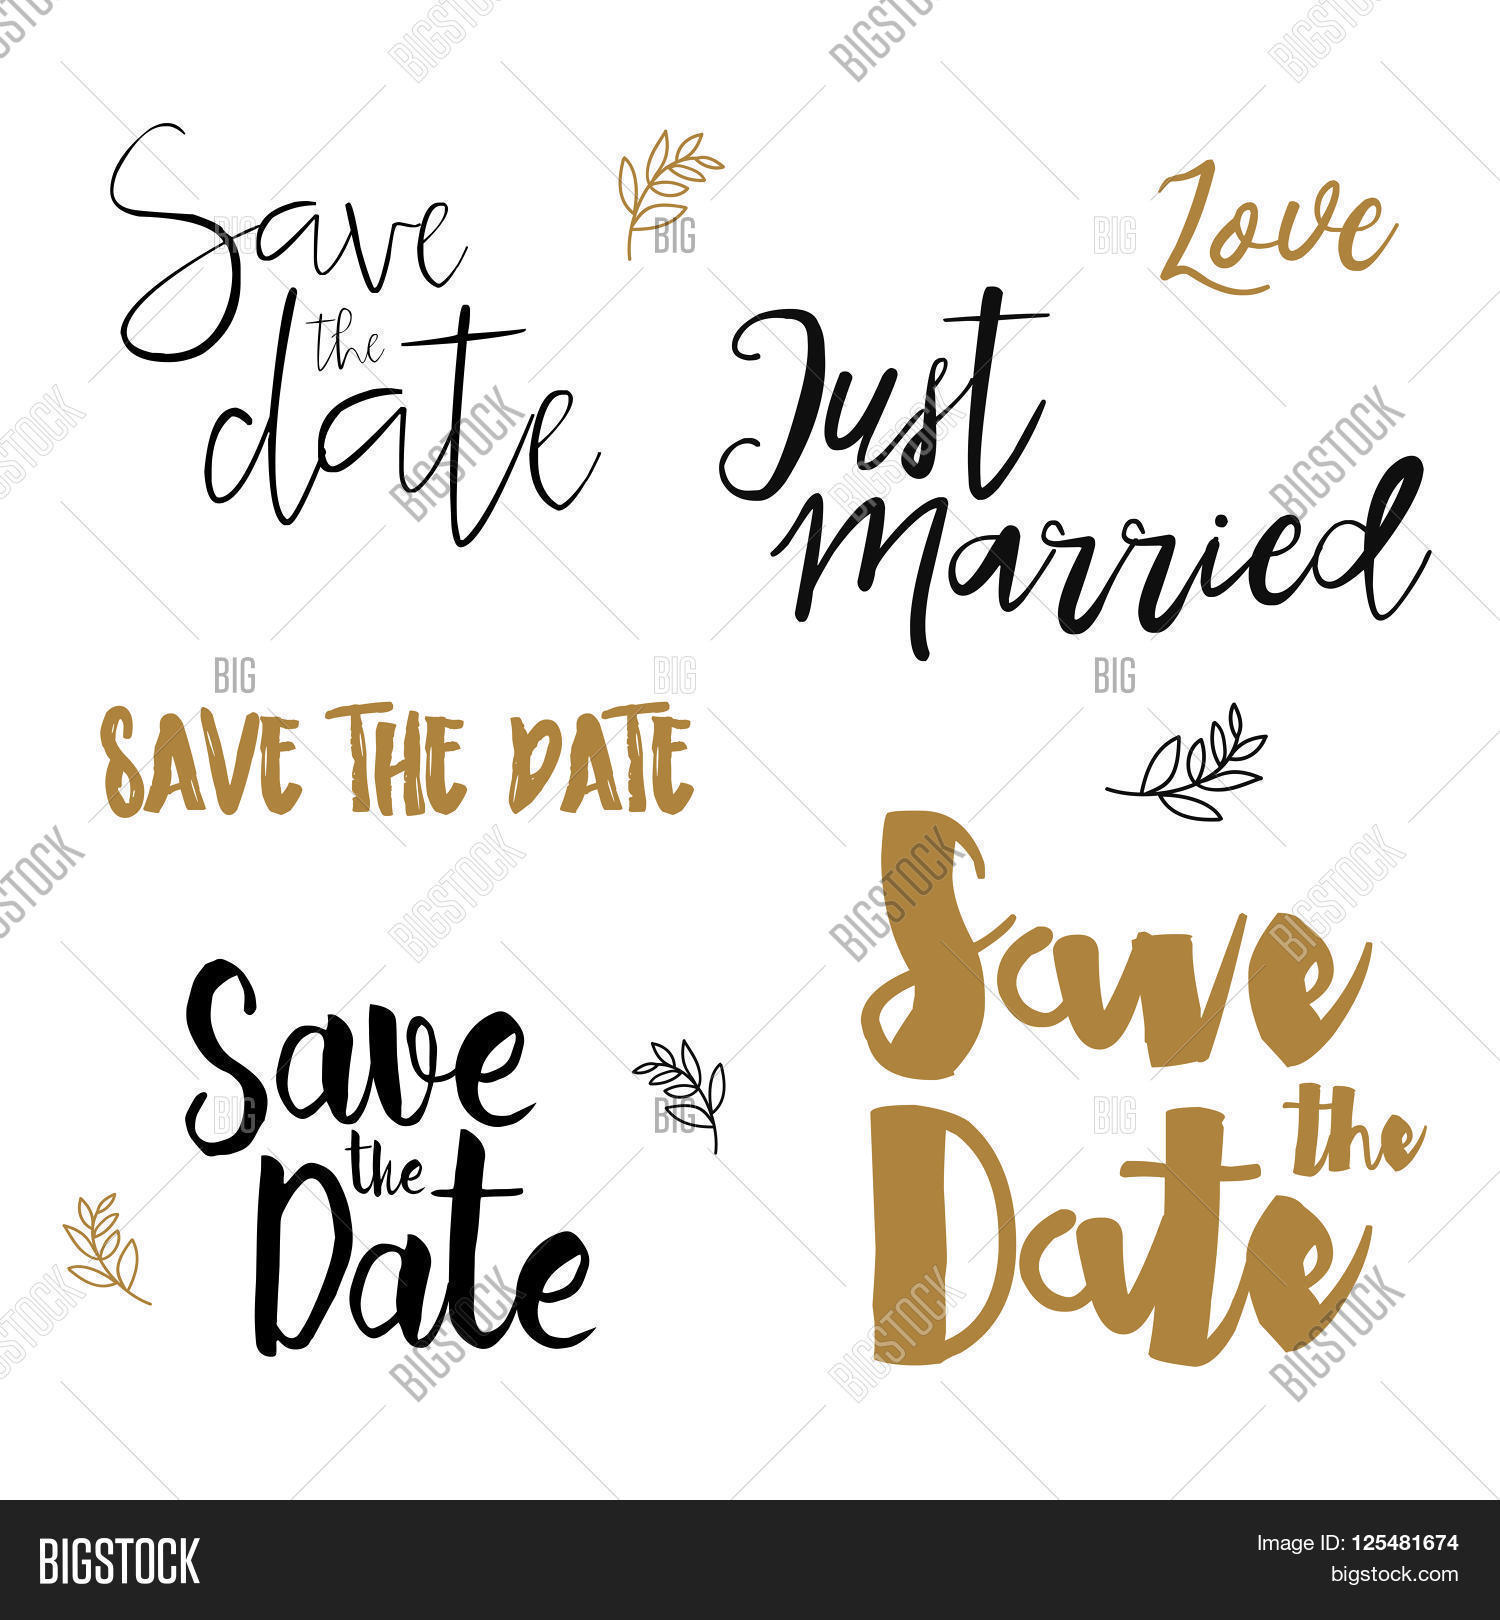 save date wedding vector photo free trial bigstock